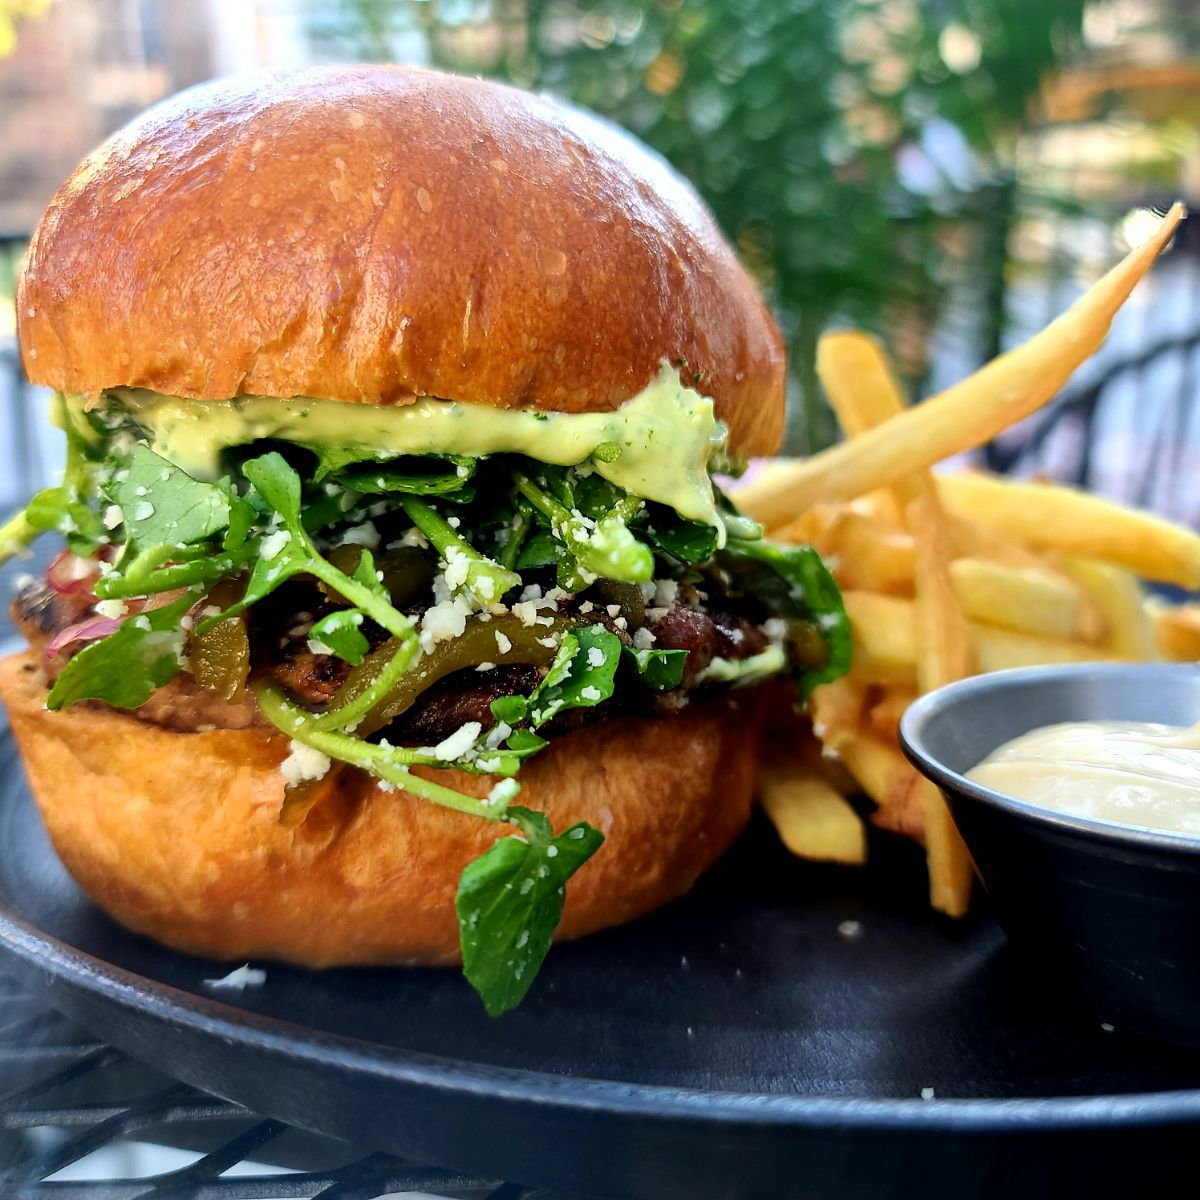 A burger with lots of watercress on a plate with fries